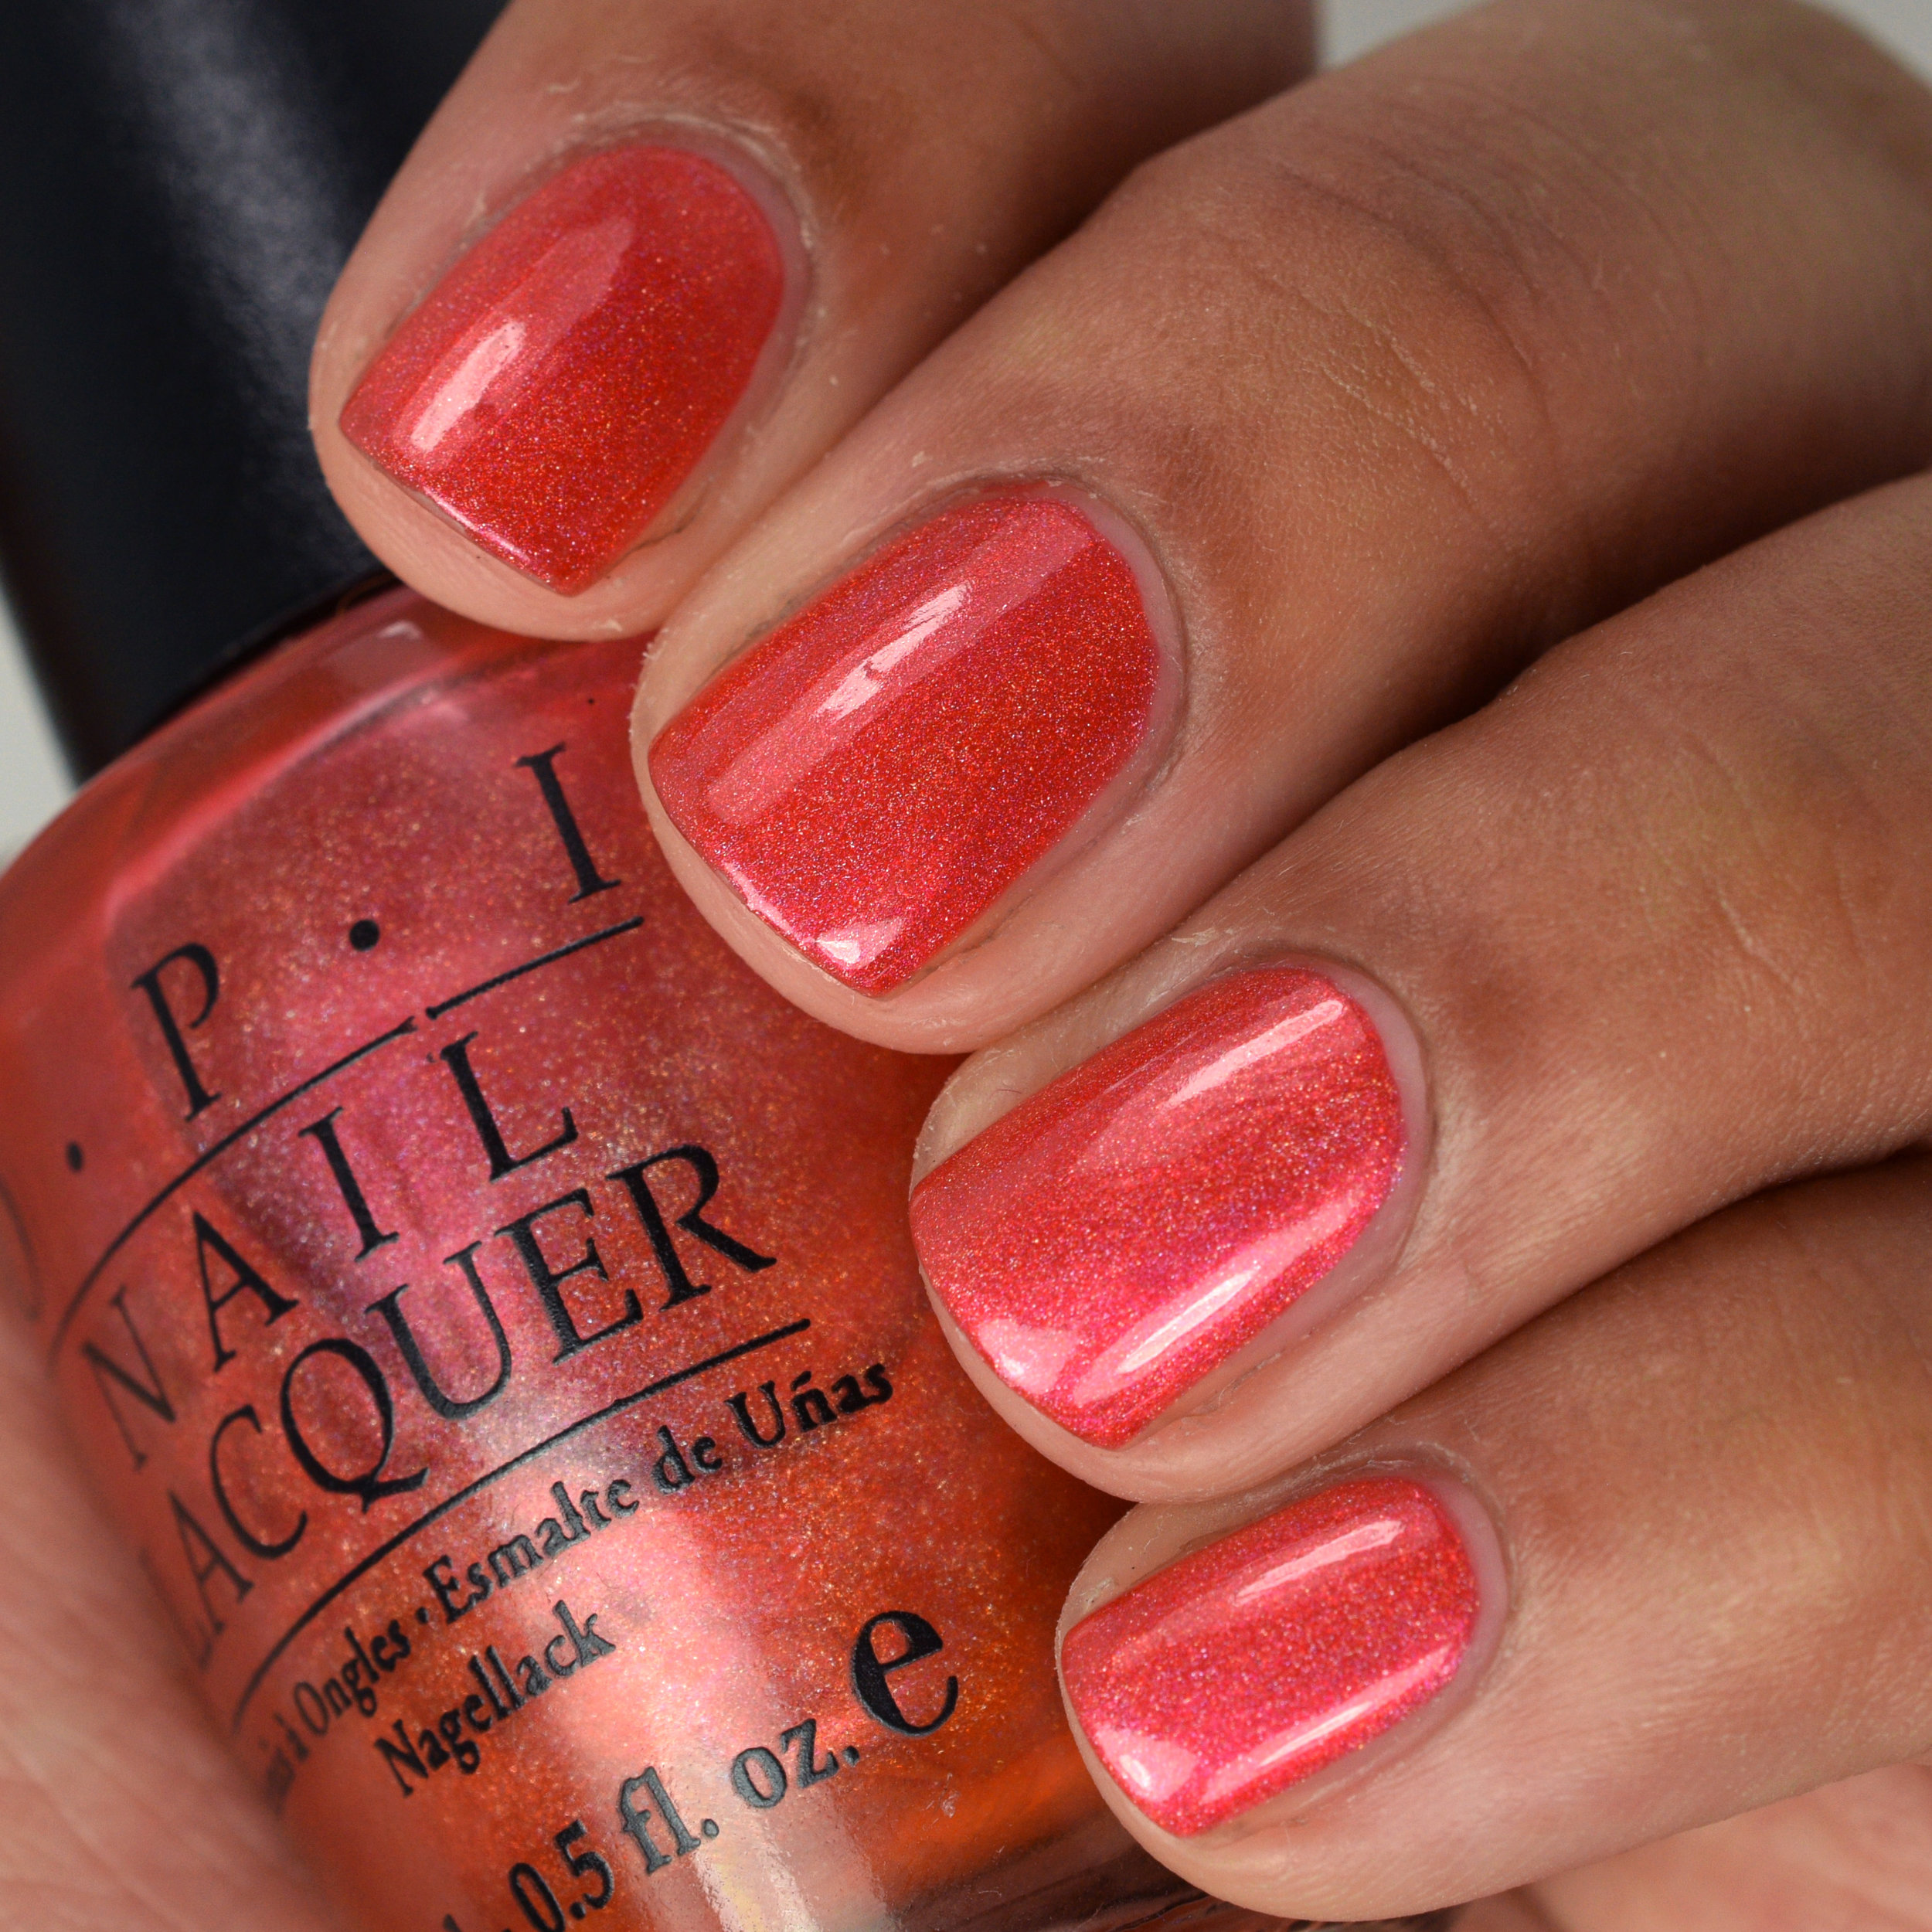 OPI It's Summer For Shore - Coral Reef.jpg